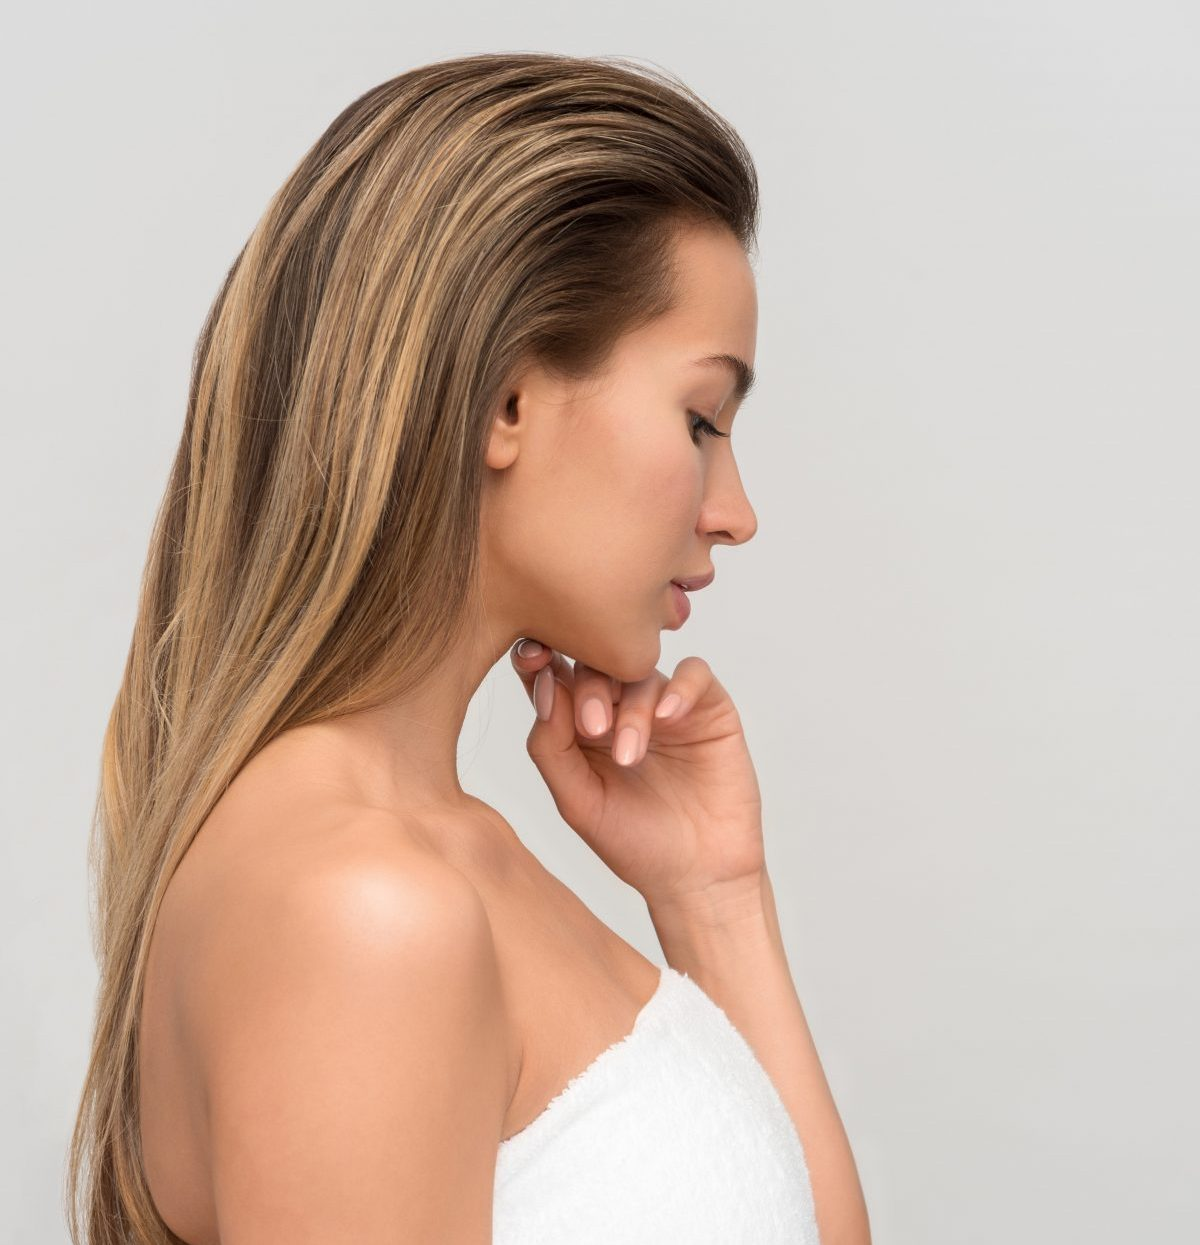 Chicago HydraFacial Treatment Services